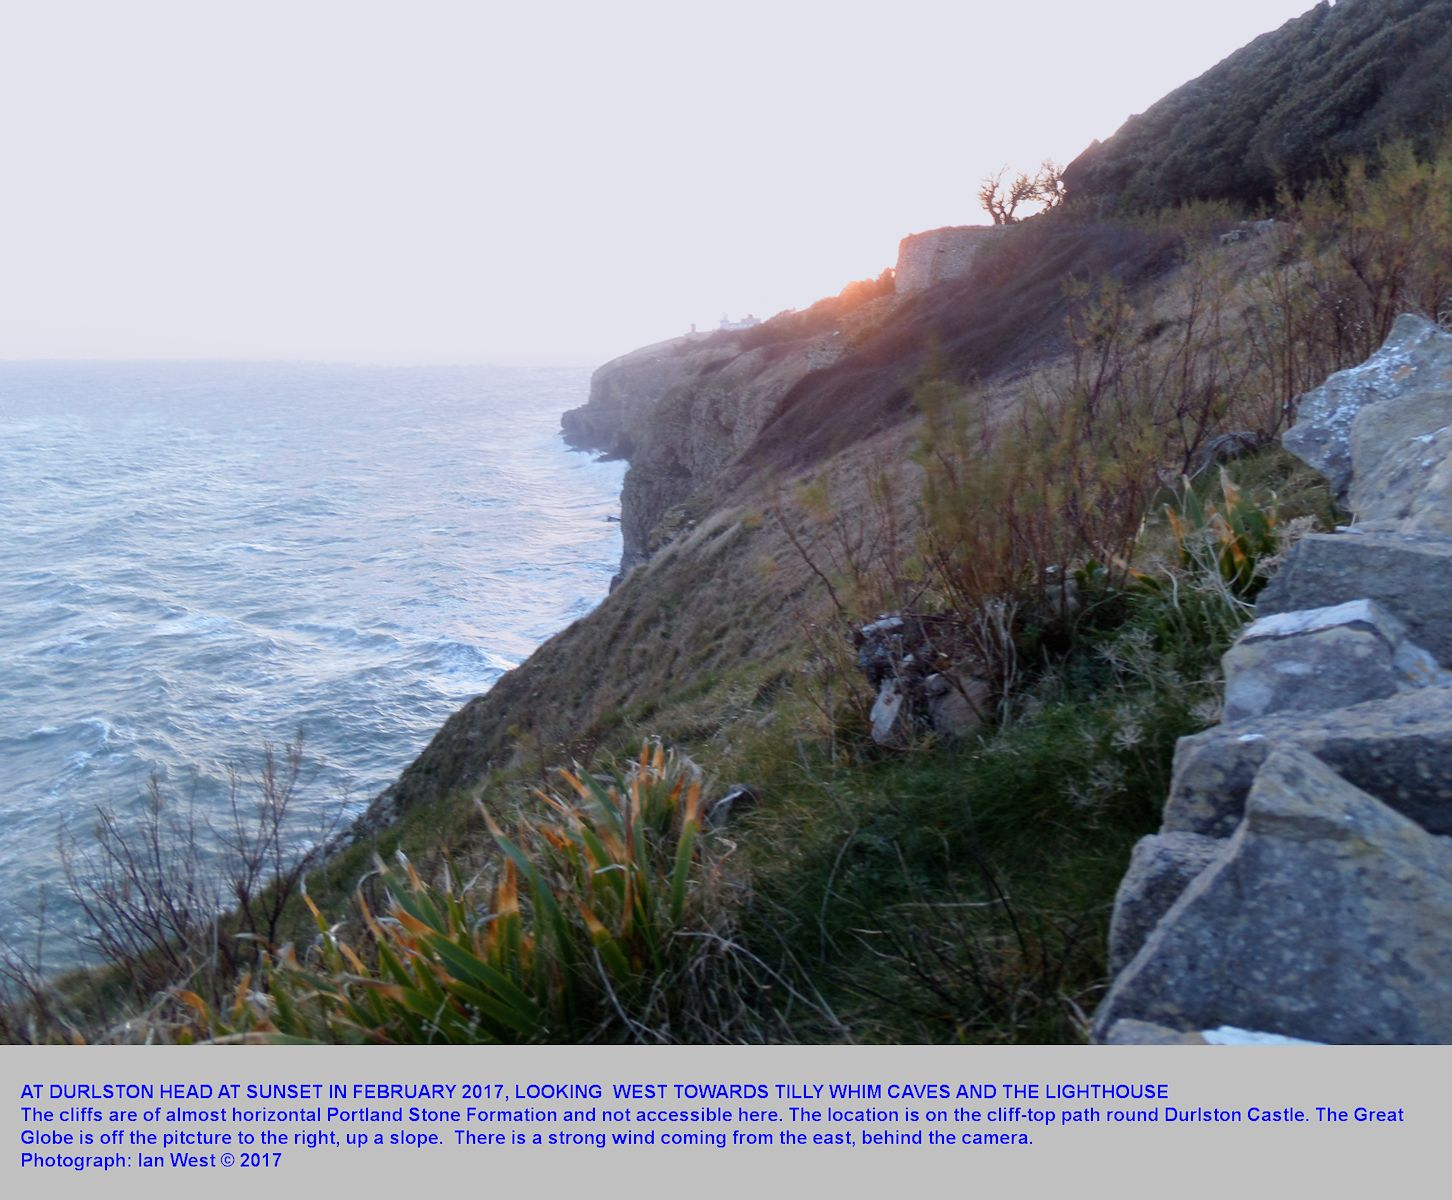 View westward from above Durlston Head, near the Great Globe, towards Tilly Whim Caves, at sunset, February 2017